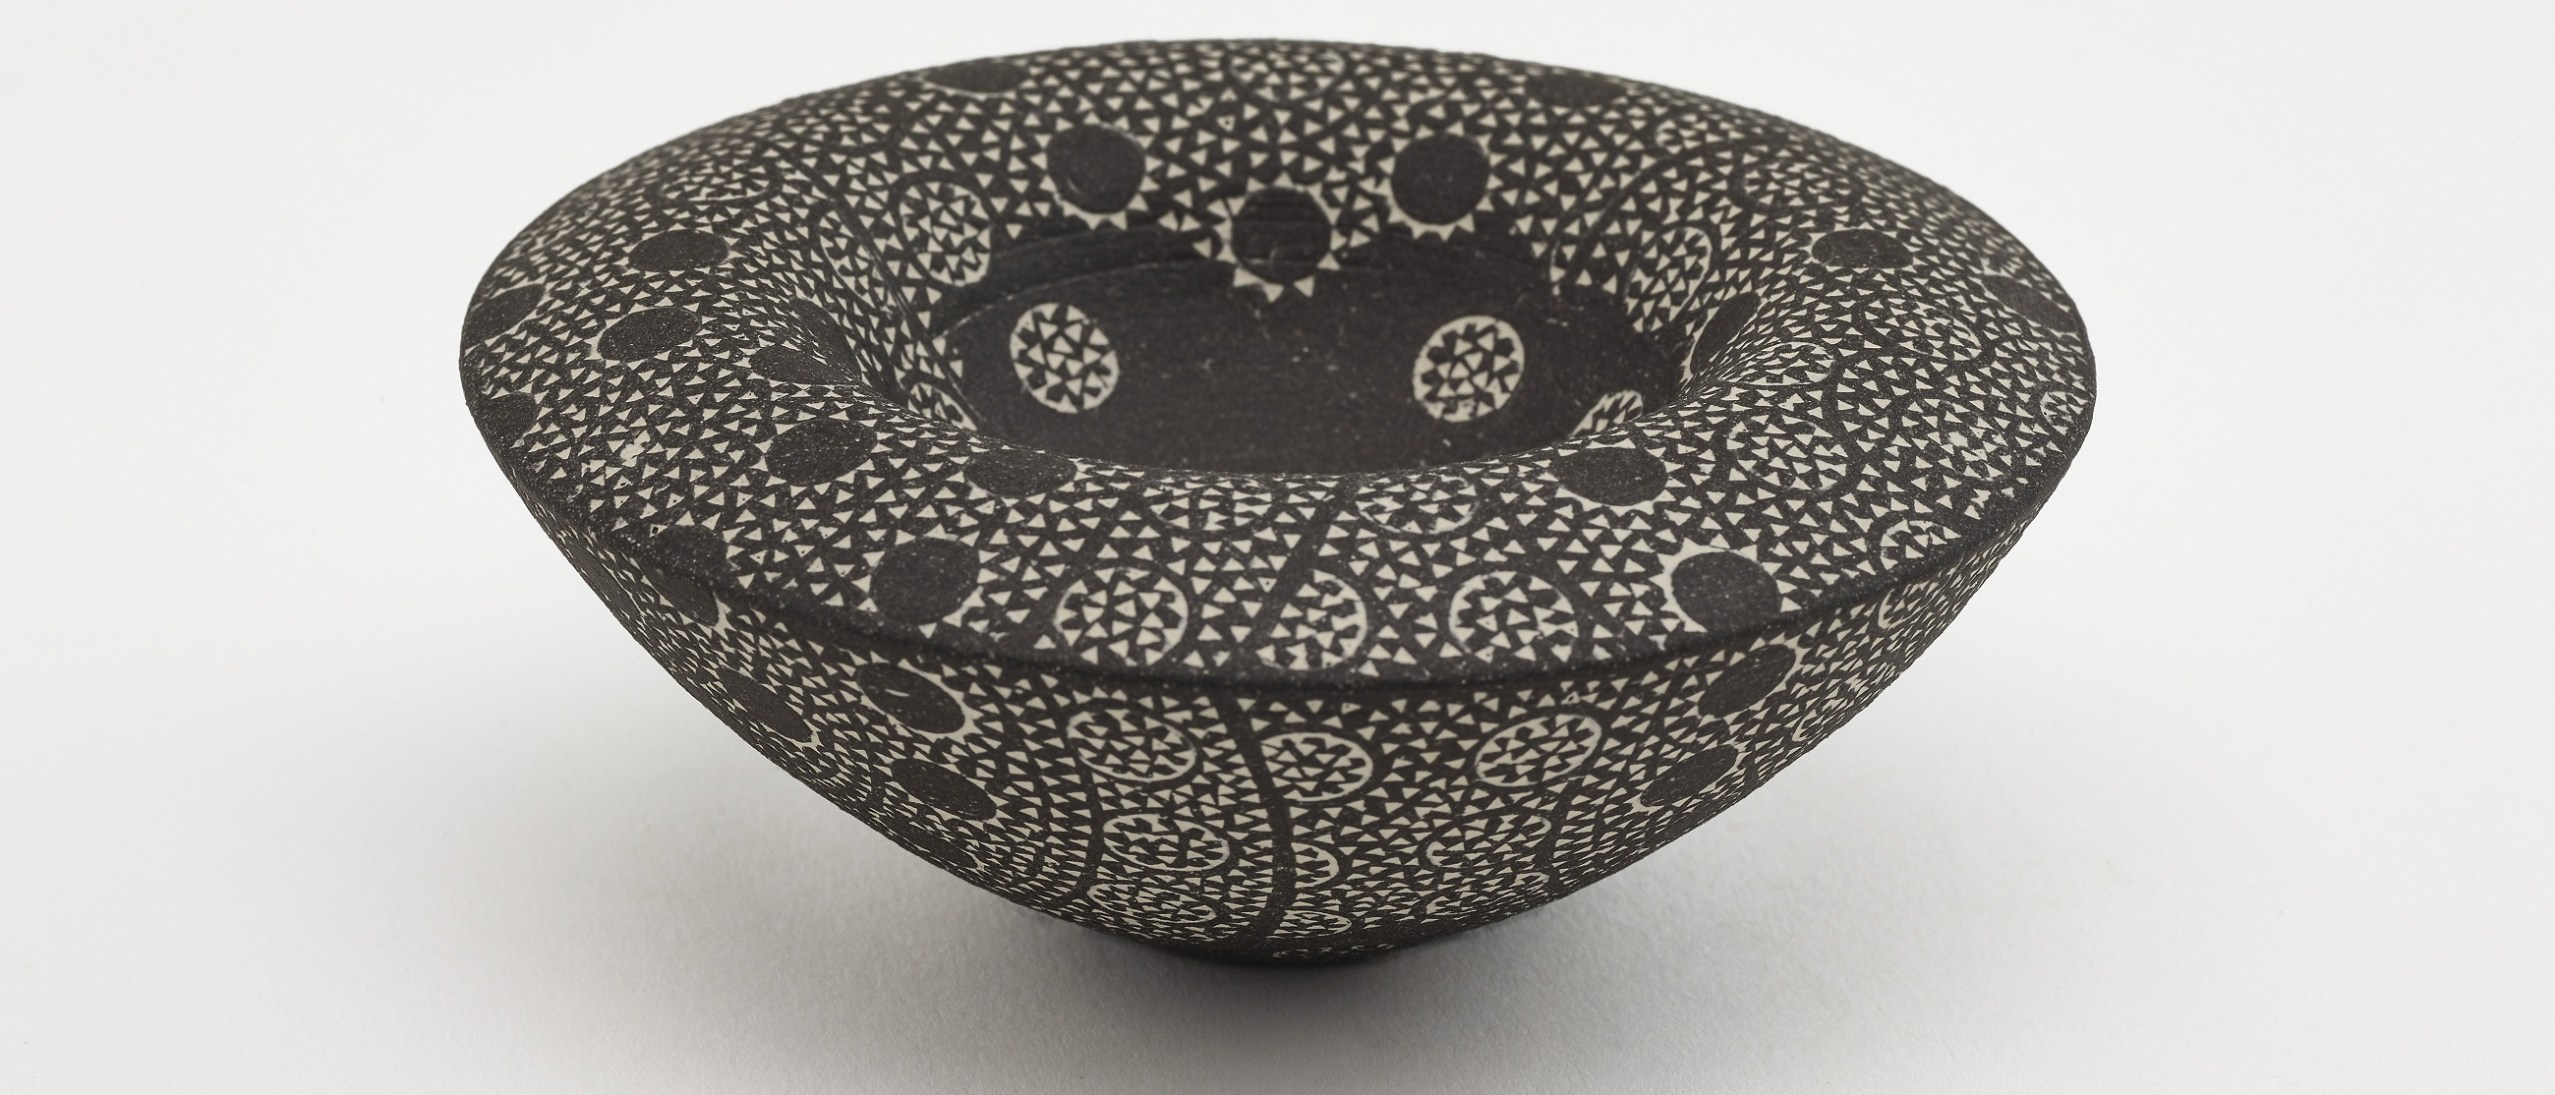 Photo of Double-walled bowl; Kitamura Junko (b. 1956); Japan, Kyoto, 2004; Black stoneware with white slip inlay; Gift of Halsey and Alice North; Arthur M. Sackler Gallery S2017.23